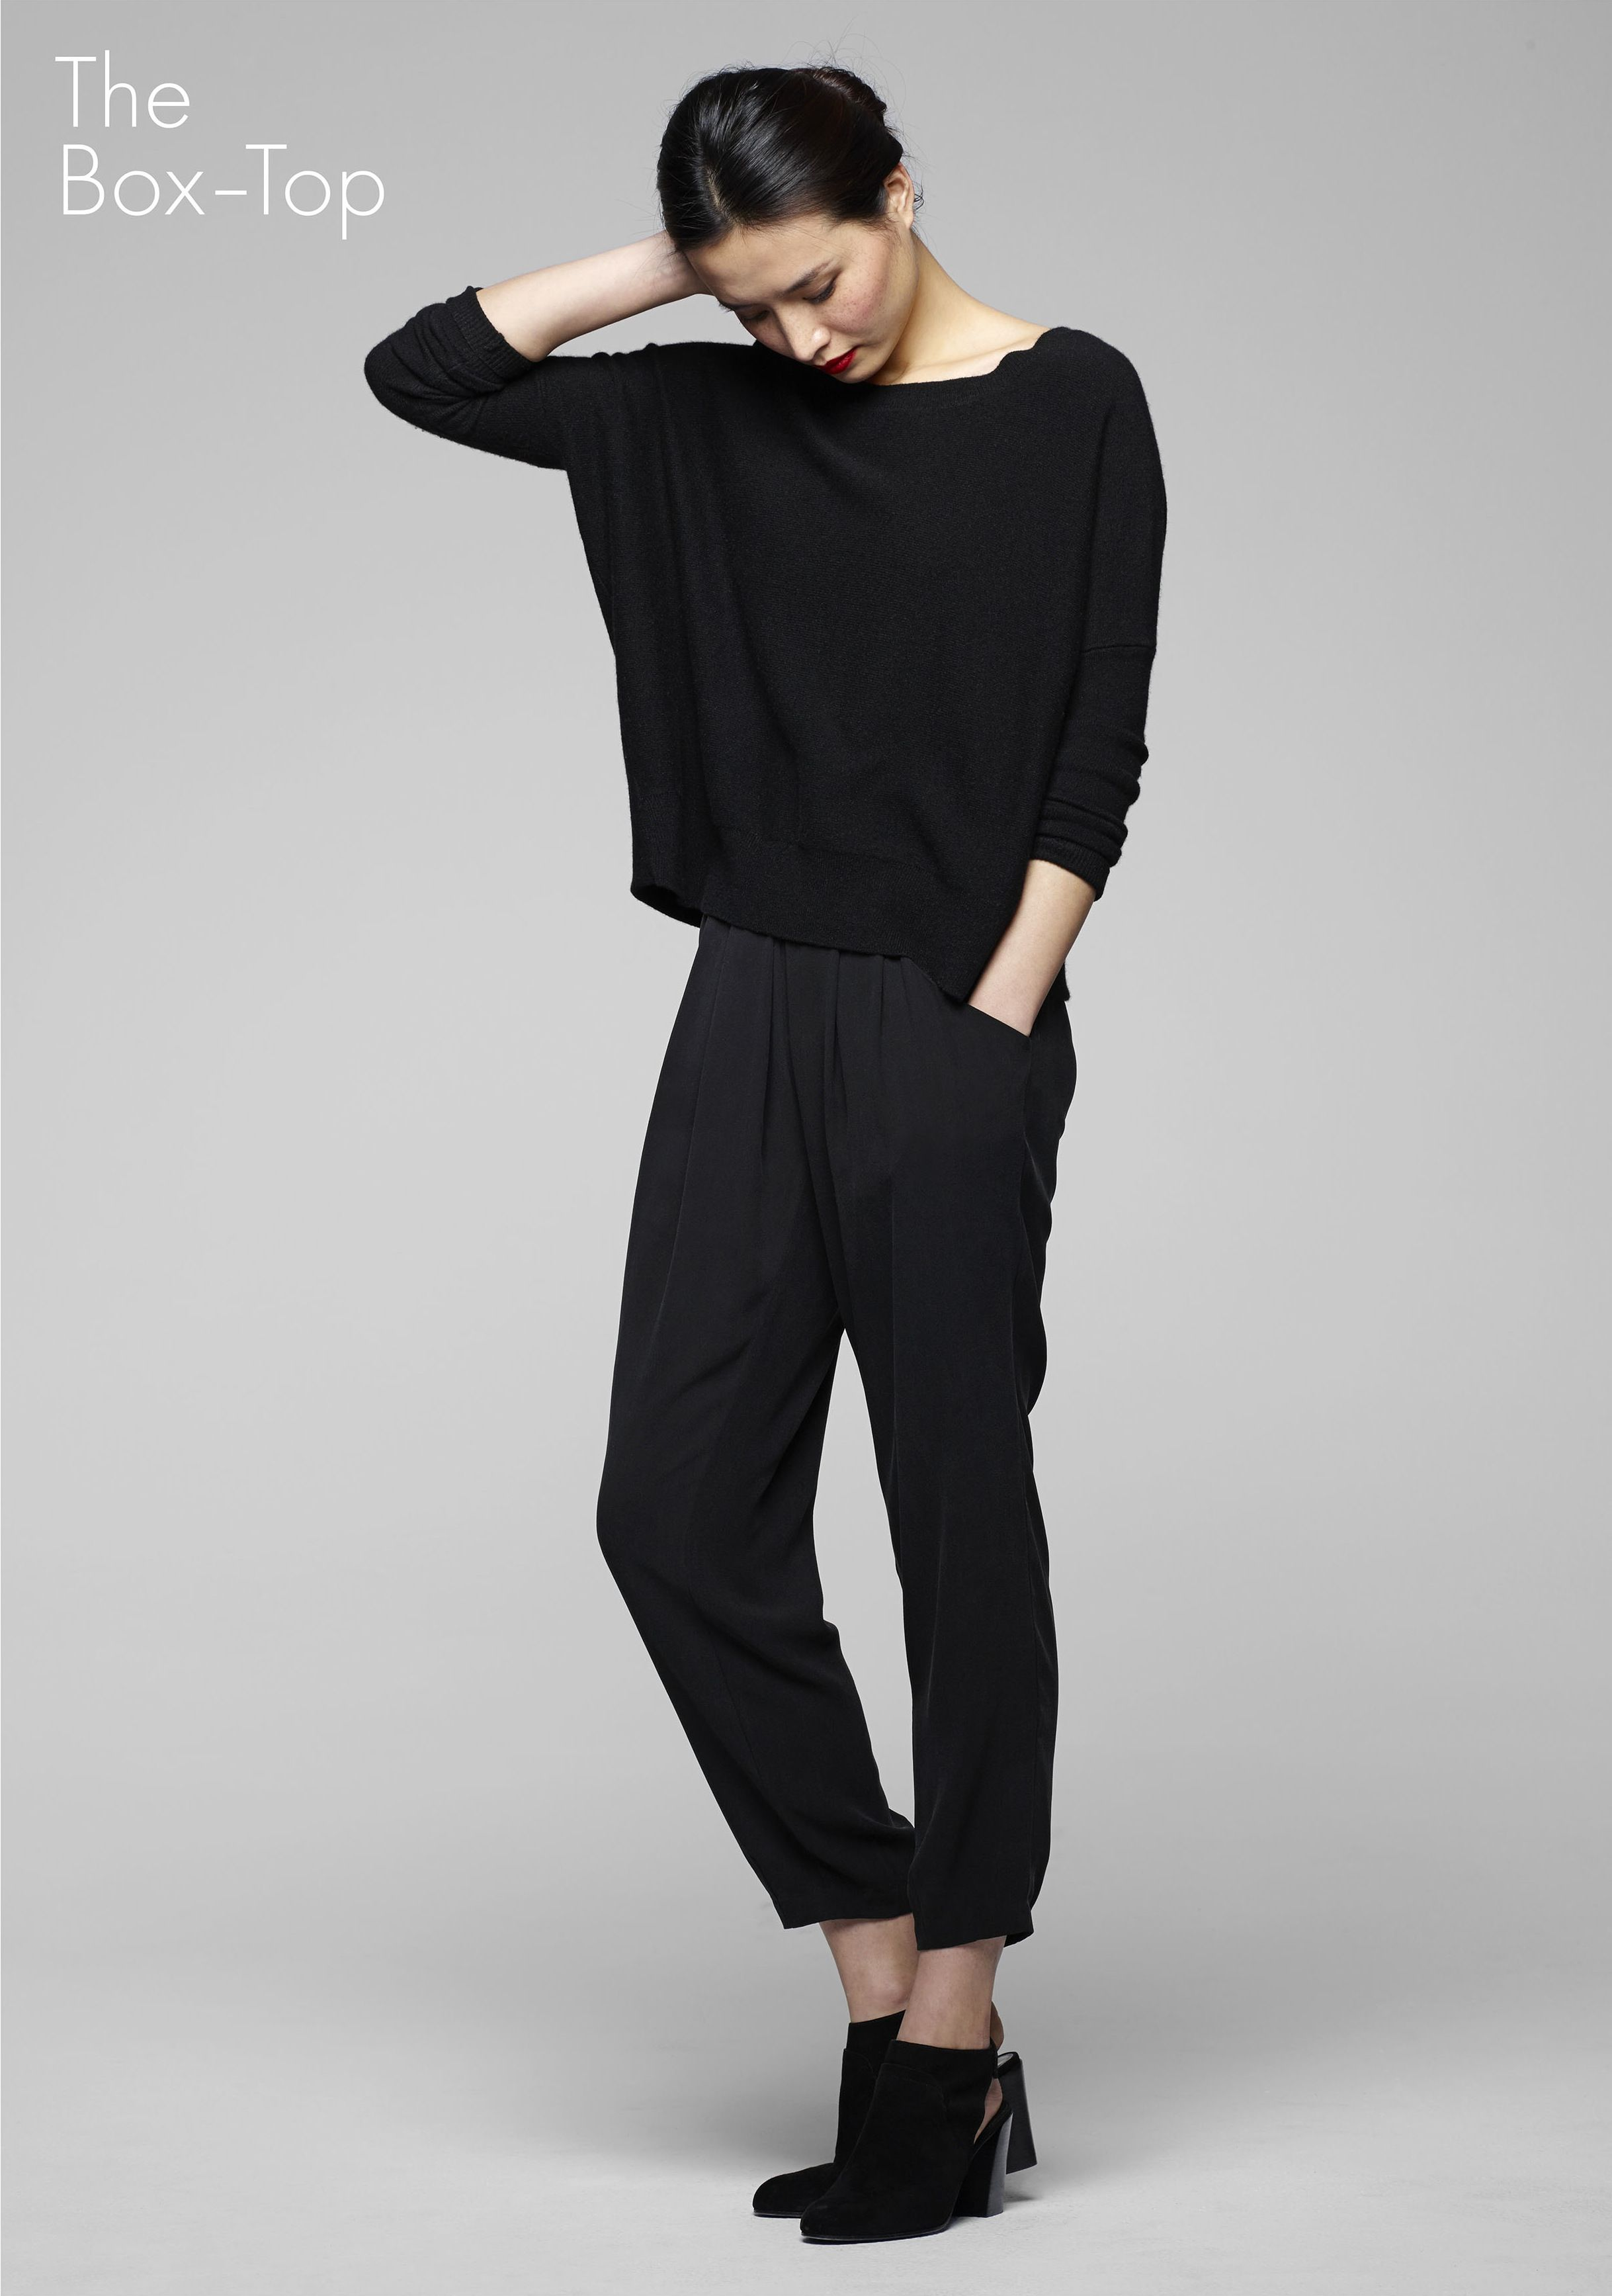 e55825621d68a4 eileen fisher icons collection : cashmere box top #EF30 | New Loves ...